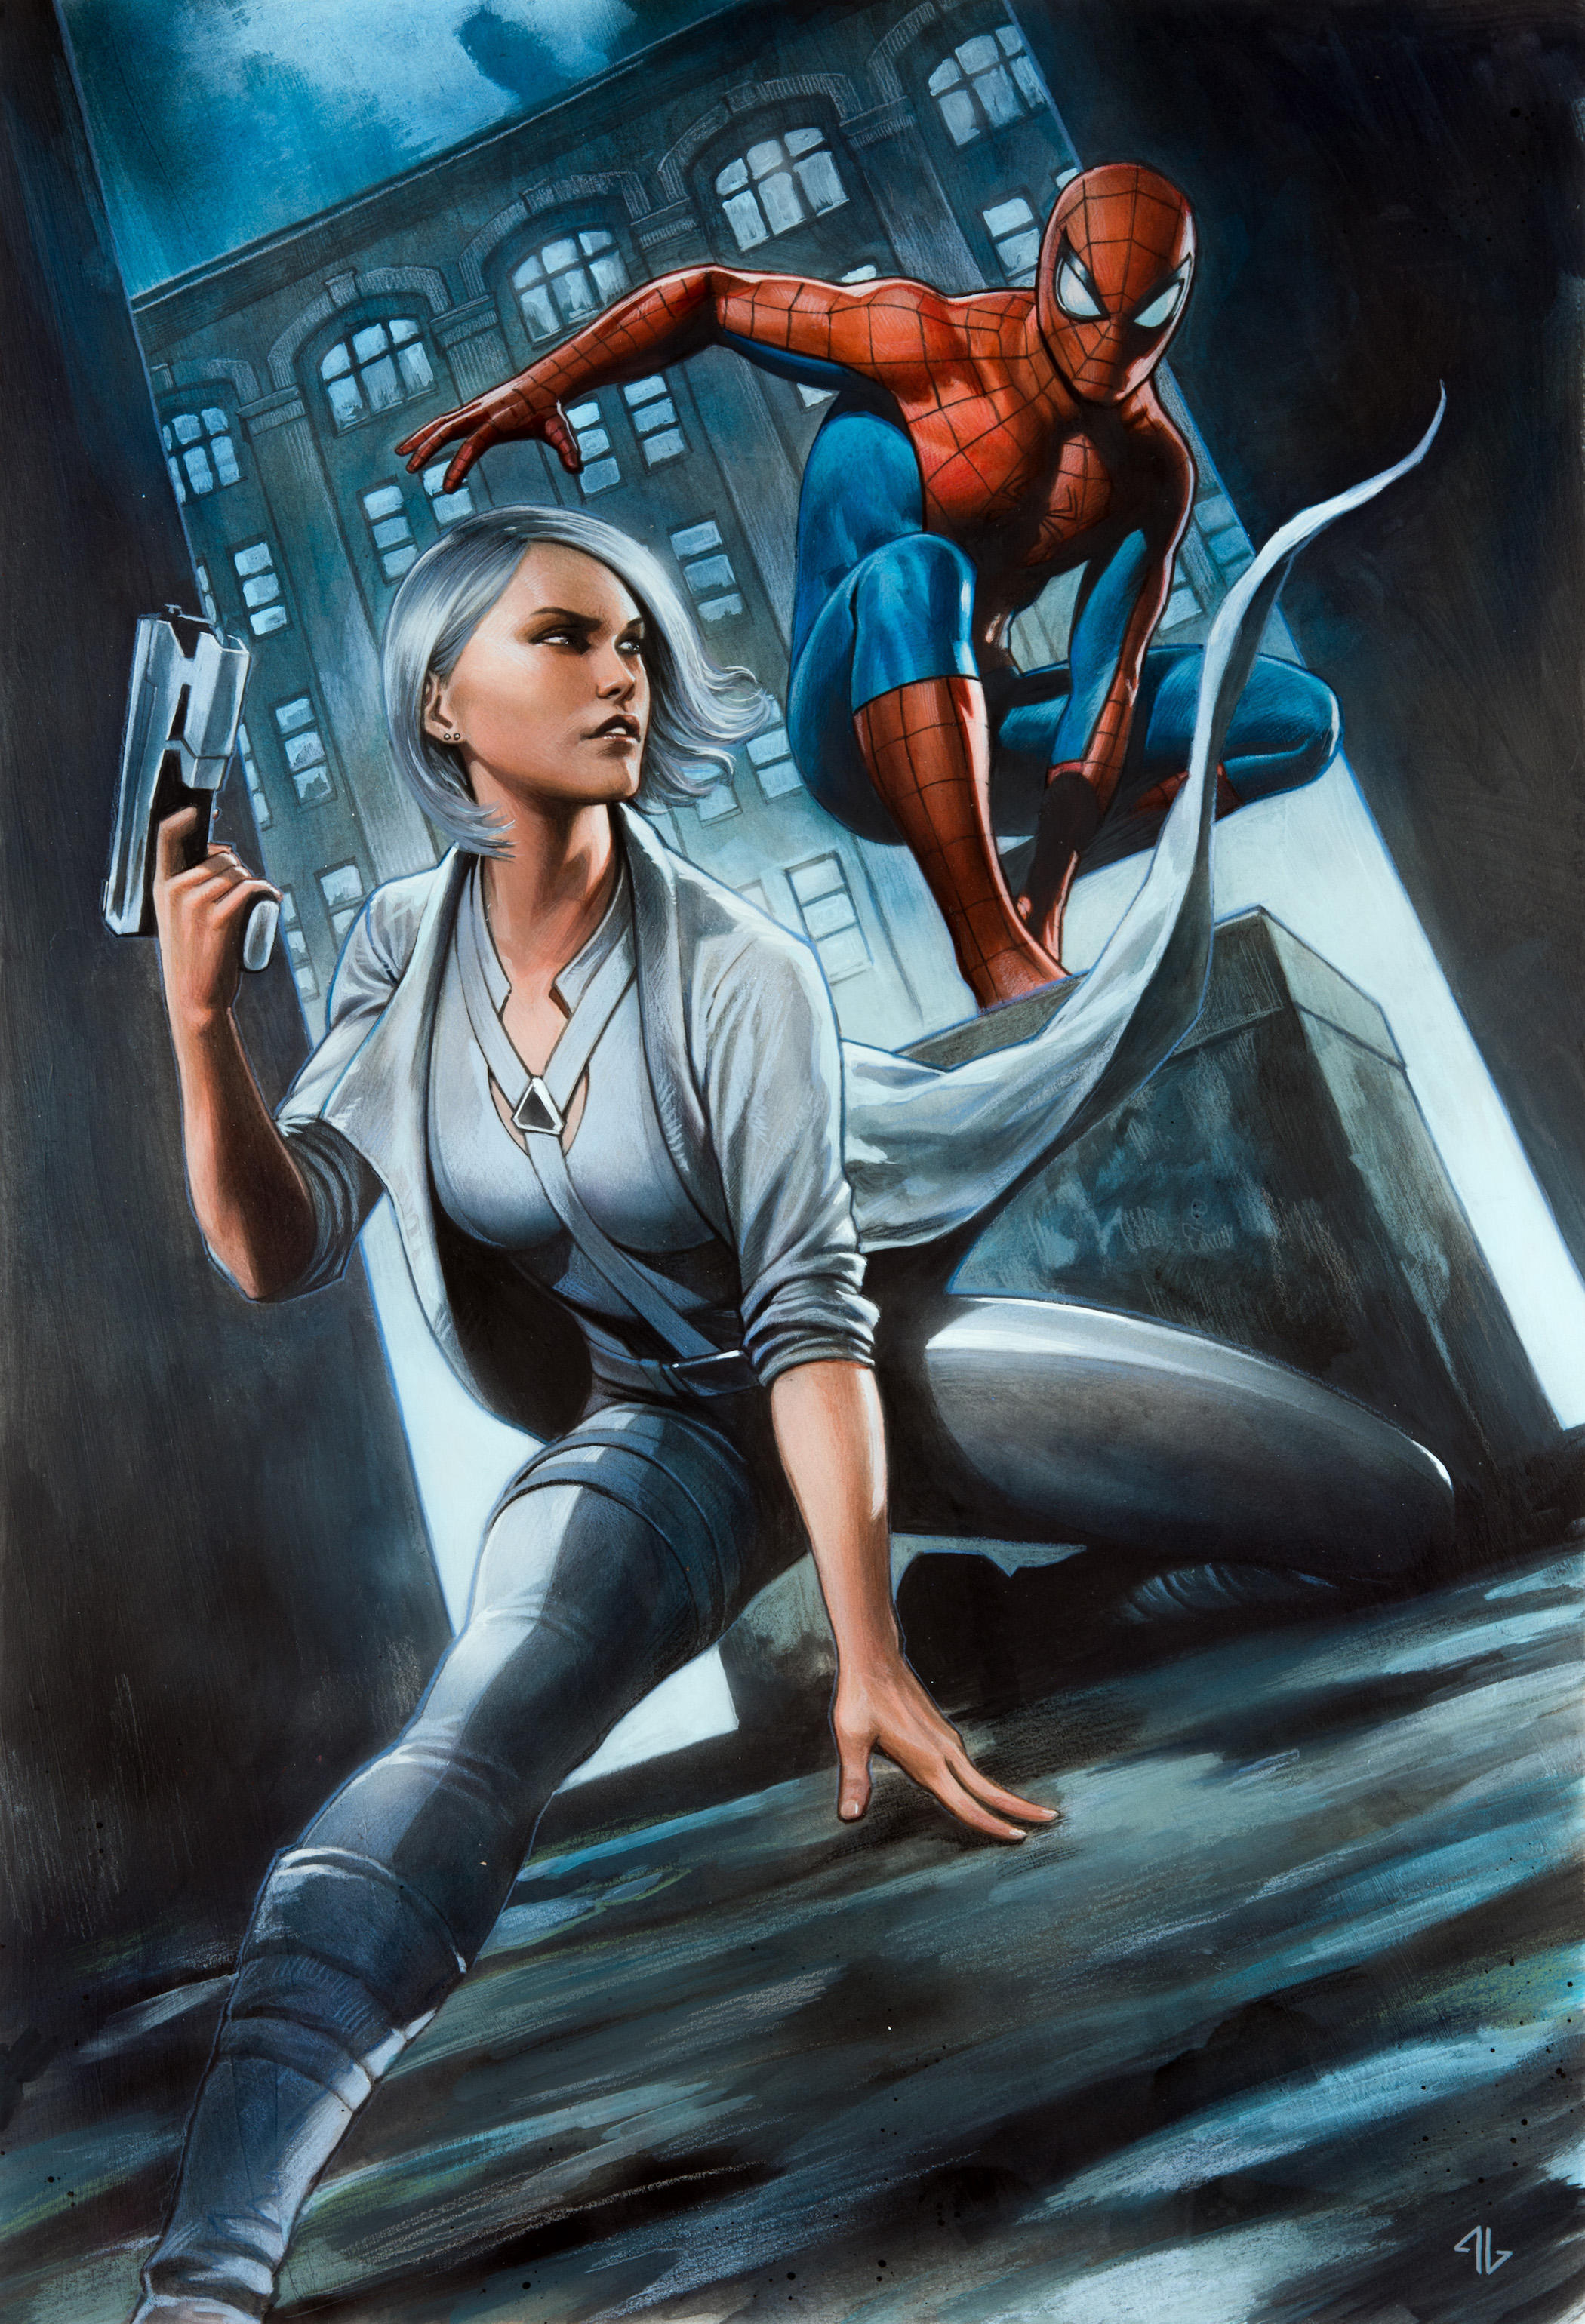 Marvel's Spider-Man: Silver Lining art by Adi Granov